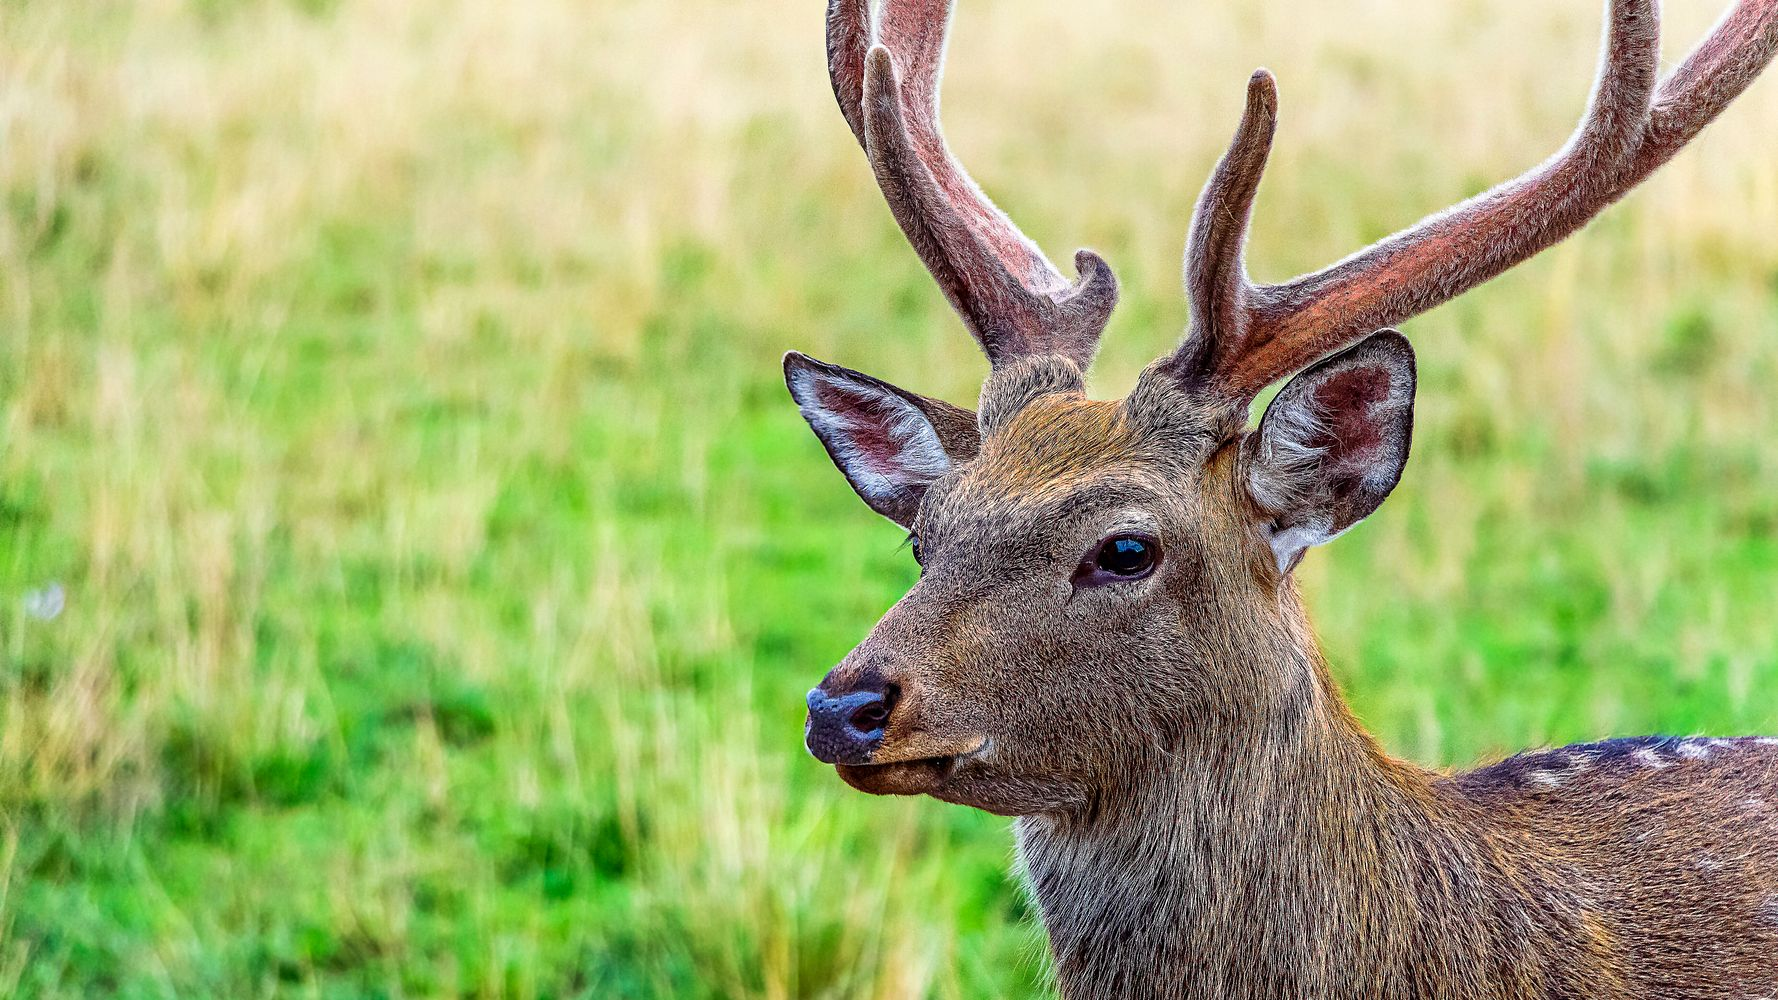 Czech Hunter Reports Rifle-Stealing Deer To Police